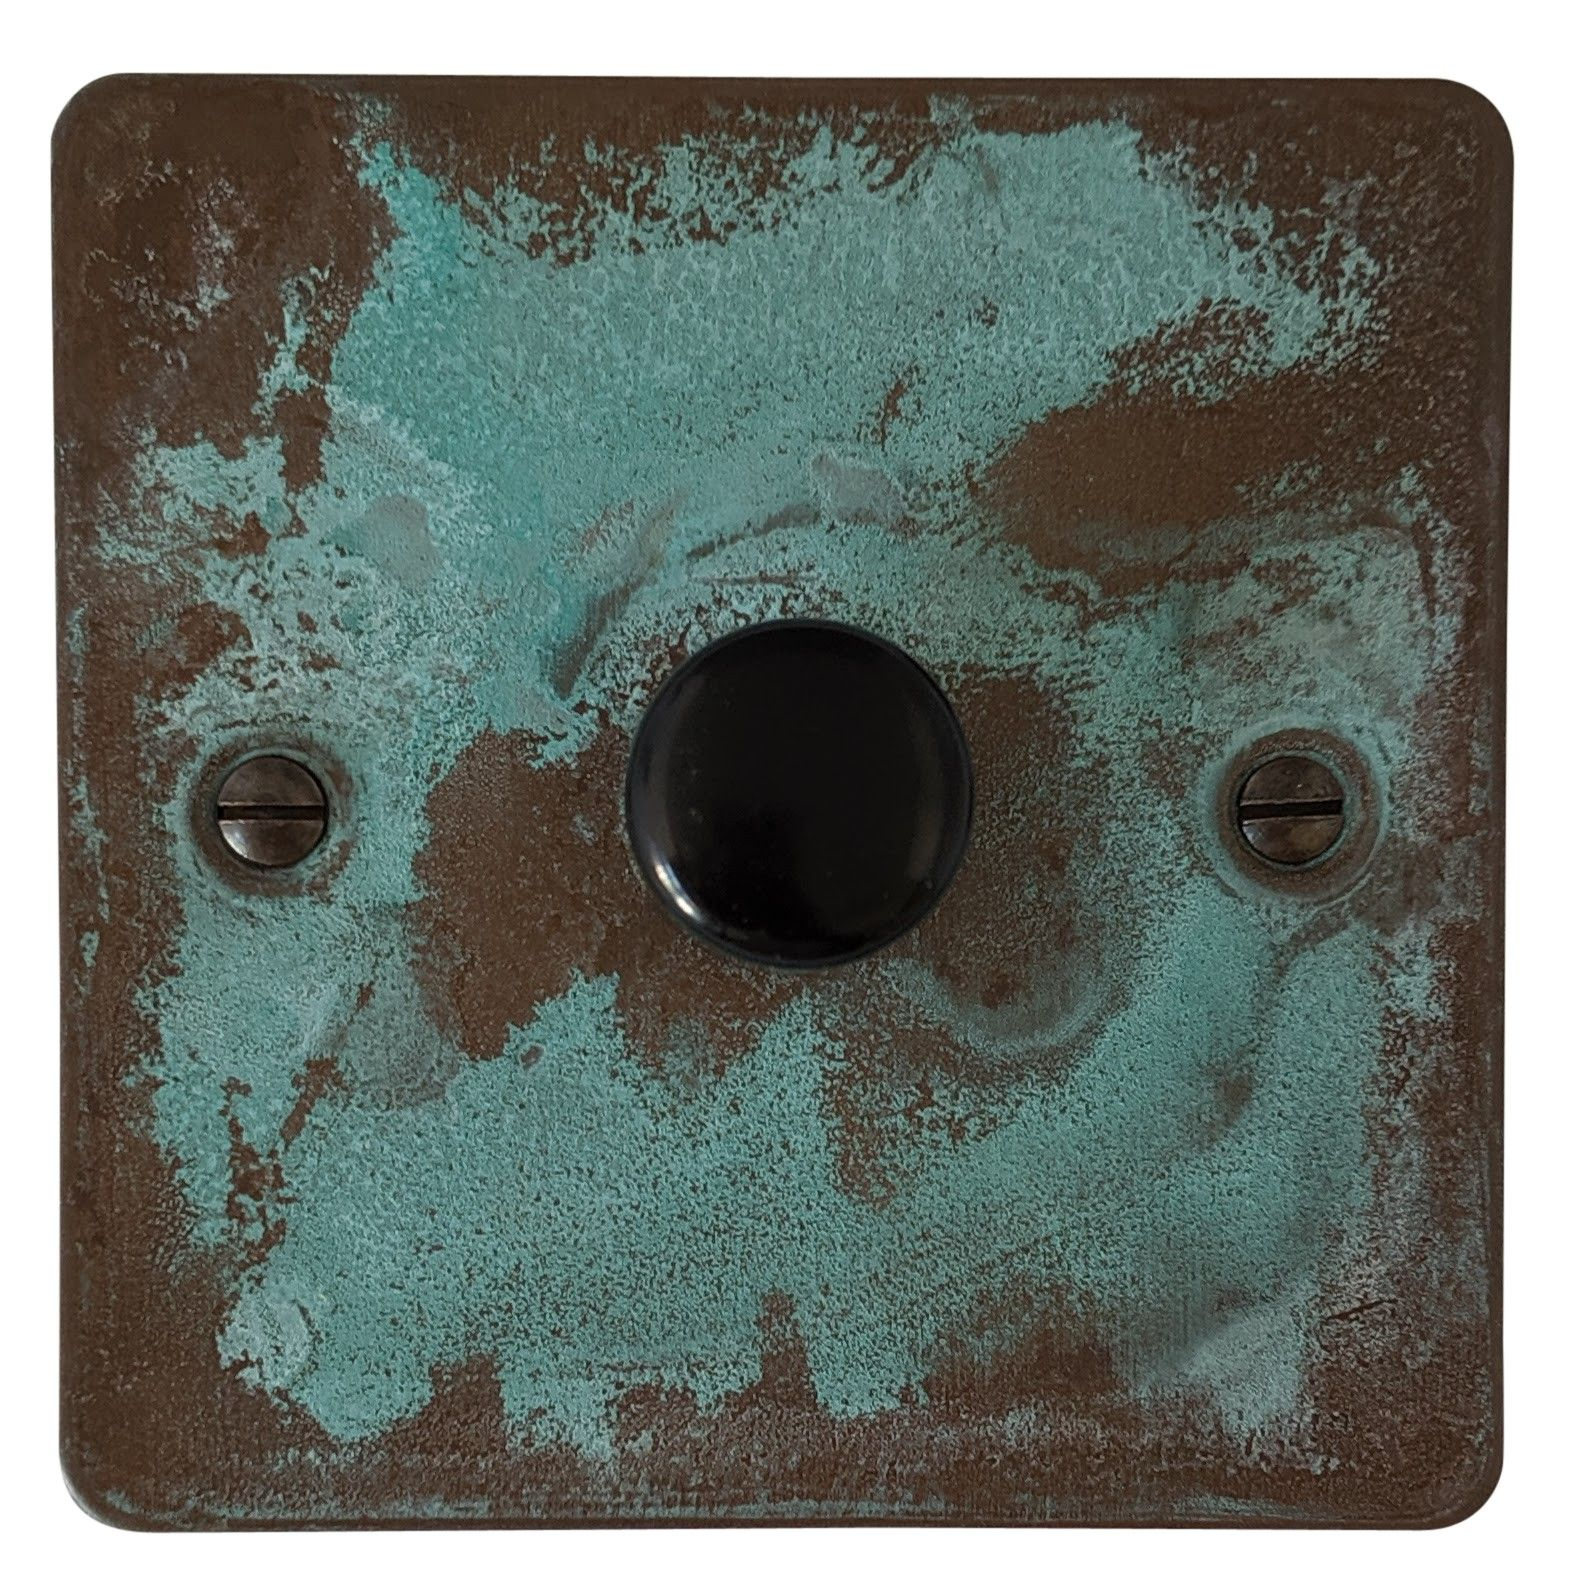 G&H FV11 Flat Plate Verdigris 1 Gang 1 or 2 Way 40-400W Dimmer Switch